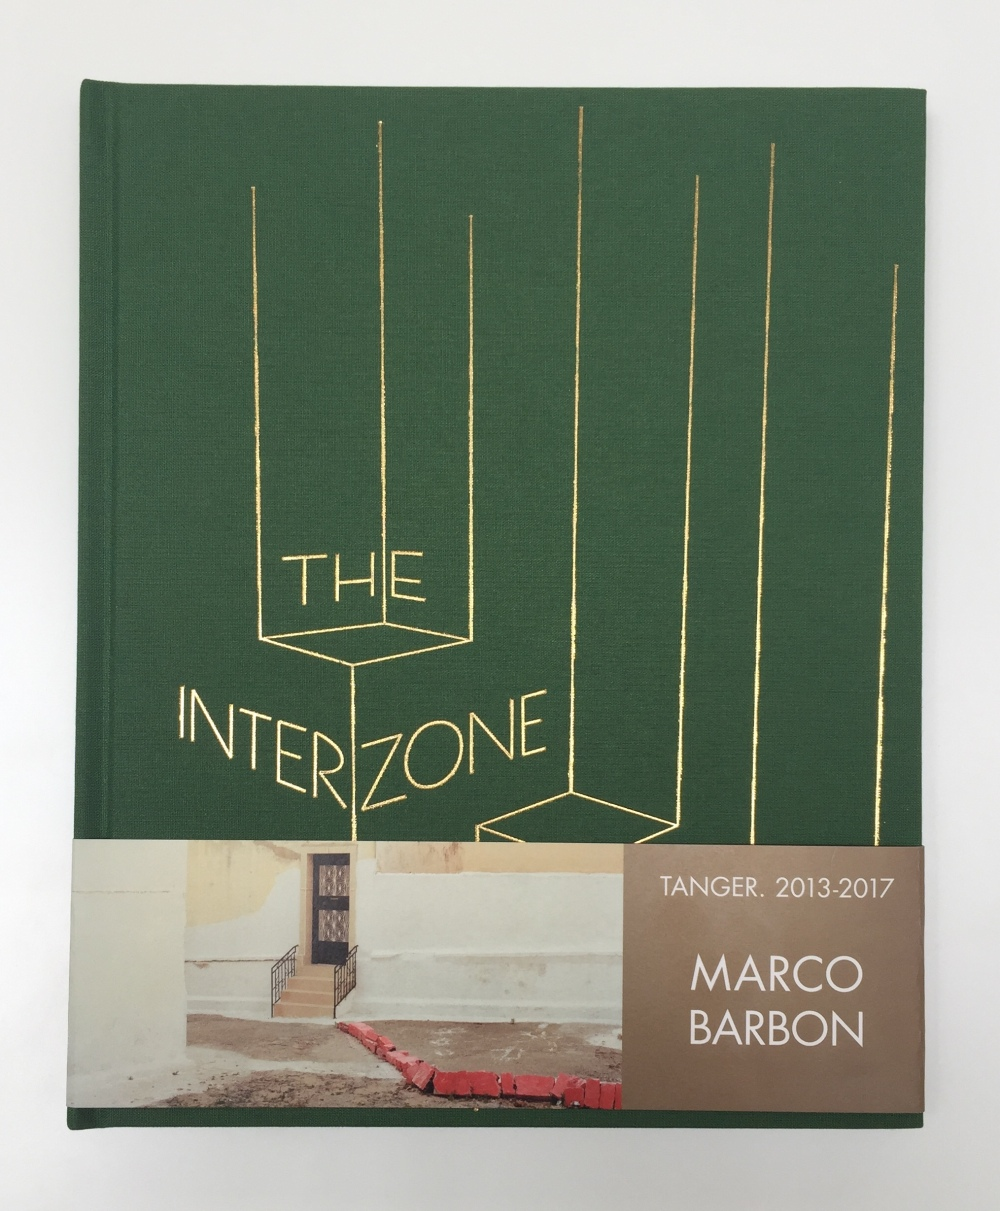 THE INTERZONE_couv_et_bandeau